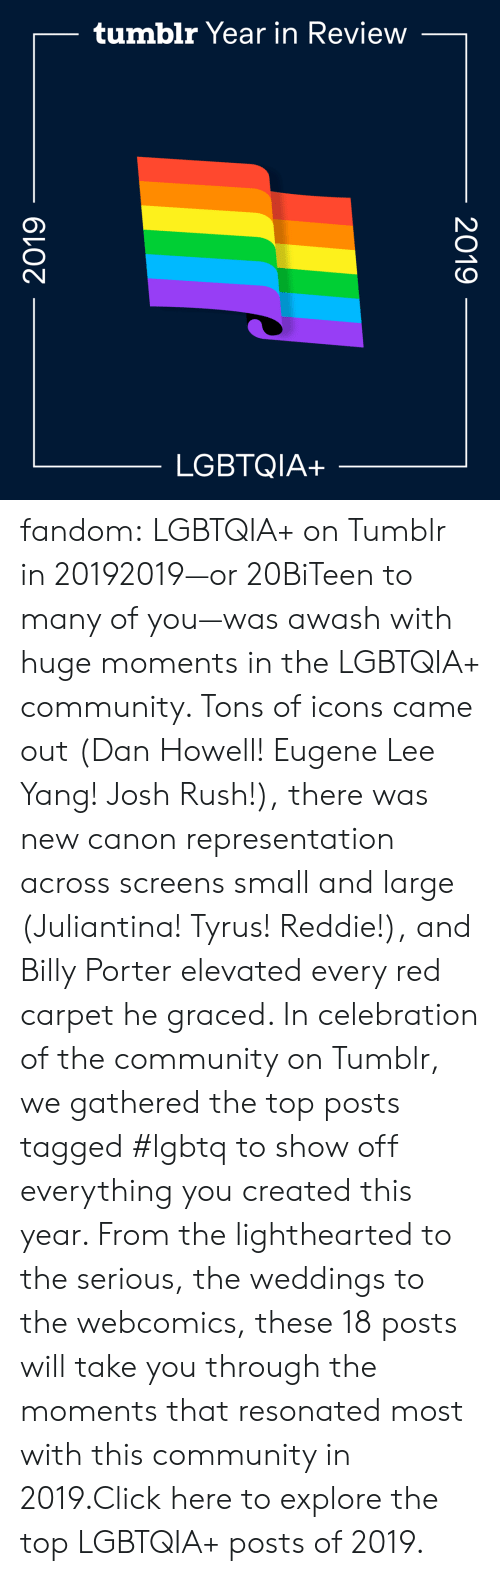 Josh: tumblr Year in Review  LGBTQIA+  2019  2019 fandom:  LGBTQIA+ on Tumblr in 20192019—or 20BiTeen to many of you—was awash with huge moments in the LGBTQIA+ community. Tons of icons came out (Dan Howell! Eugene Lee Yang! Josh Rush!), there was new canon representation across screens small and large (Juliantina! Tyrus! Reddie!), and Billy Porter elevated every red carpet he graced. In celebration of the community on Tumblr, we gathered the top posts tagged #lgbtq to show off everything you created this year. From the lighthearted to the serious, the weddings to the webcomics, these 18 posts will take you through the moments that resonated most with this community in 2019.Click here to explore the top LGBTQIA+ posts of 2019.